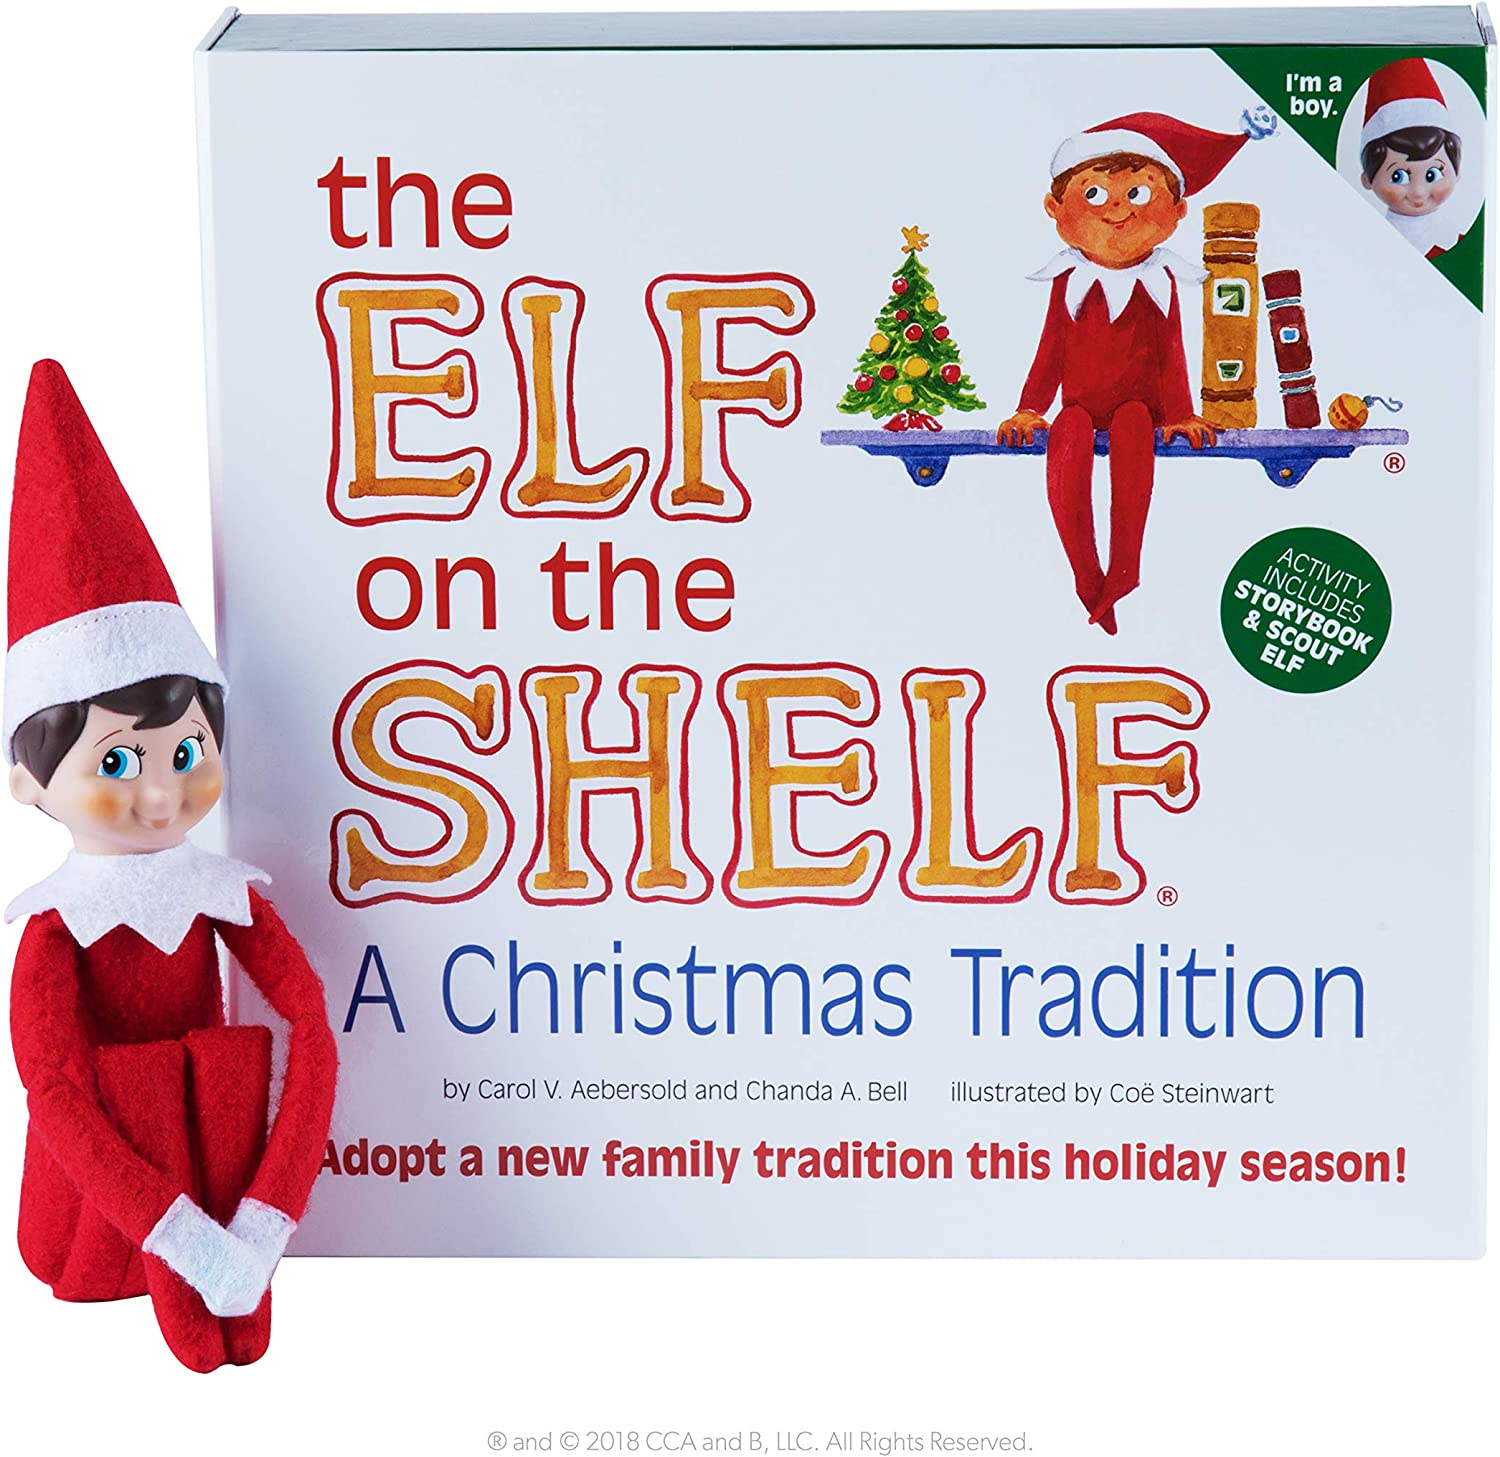 Amazon Com The Elf On The Shelf A Christmas Tradition Chanda A Bell Carol V Aebersold Coe Steinwart Toys Games